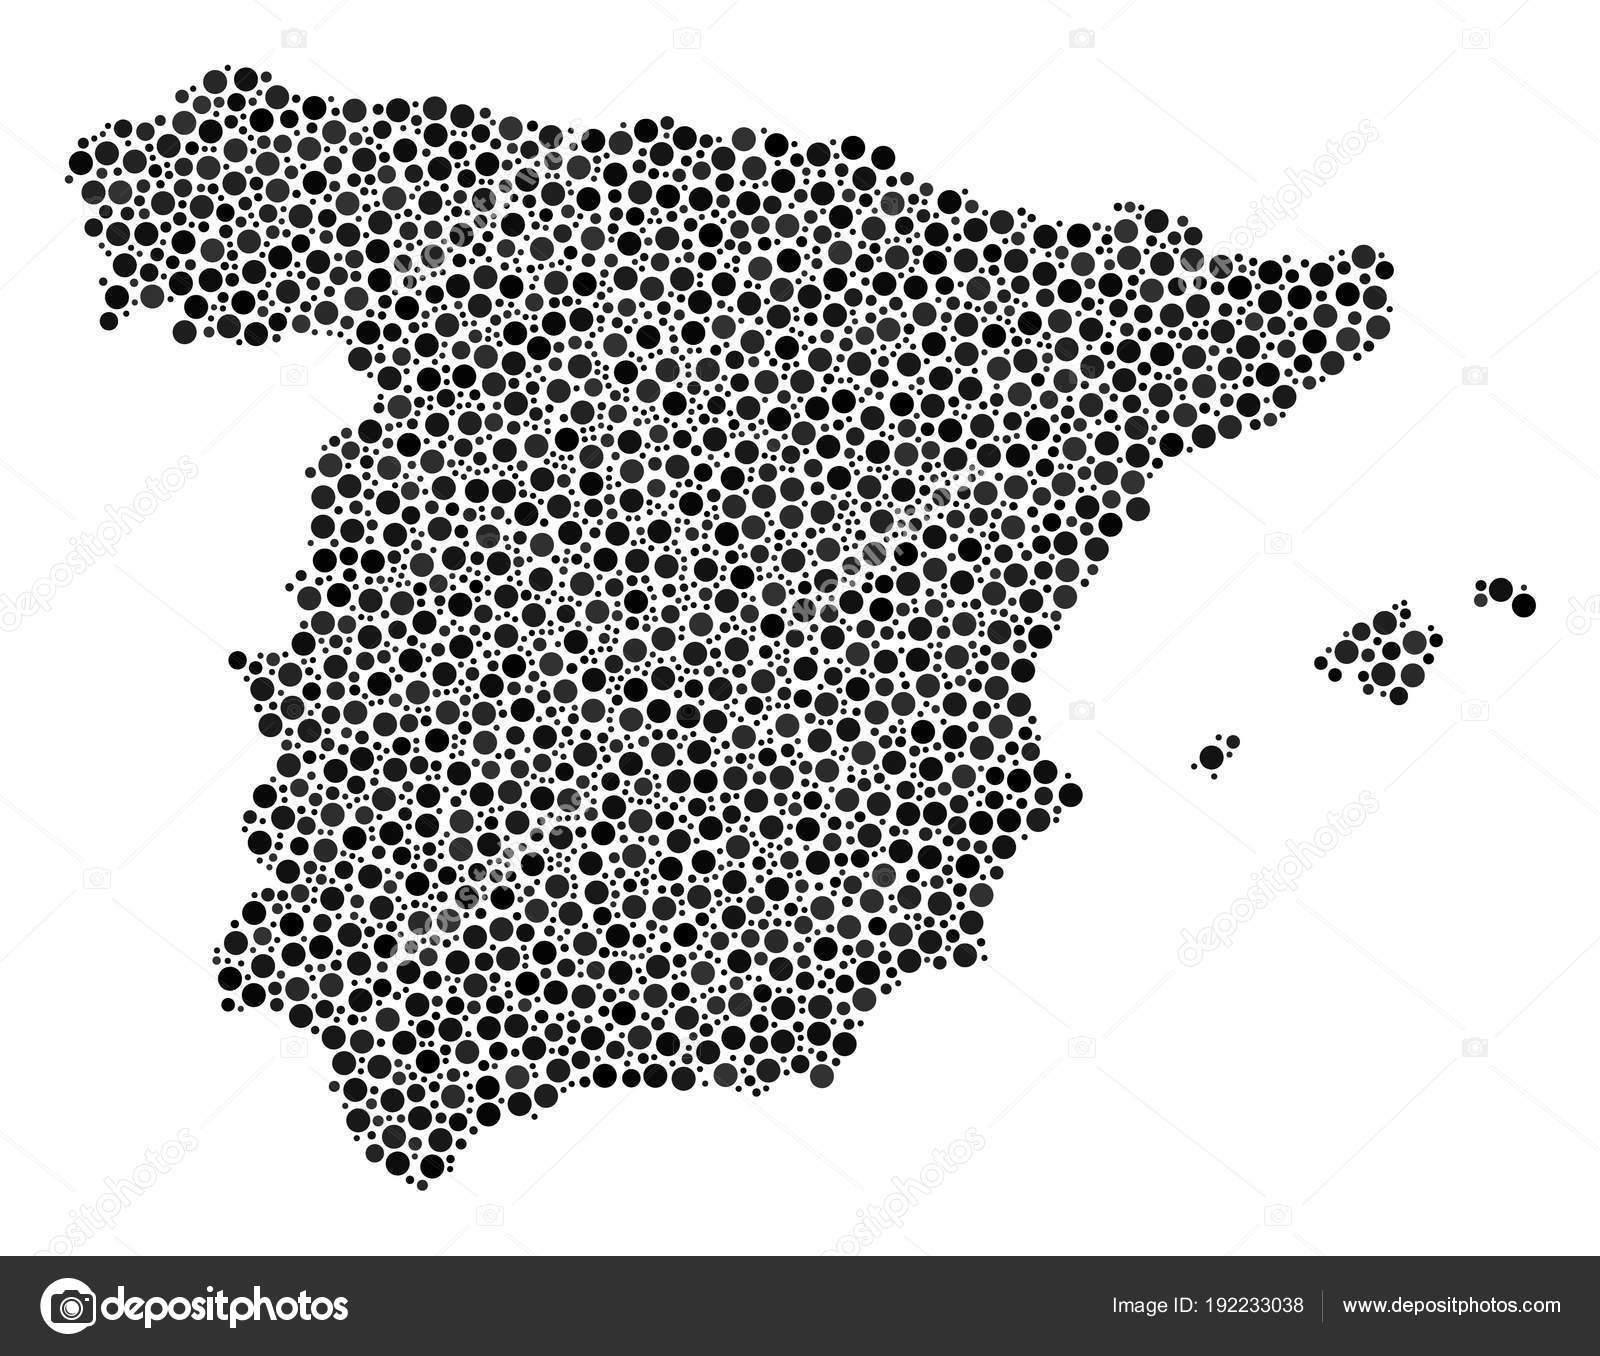 Small Map Of Spain.Spain Map Collage Of Small Circles Stock Vector C Ahasoft 192233038